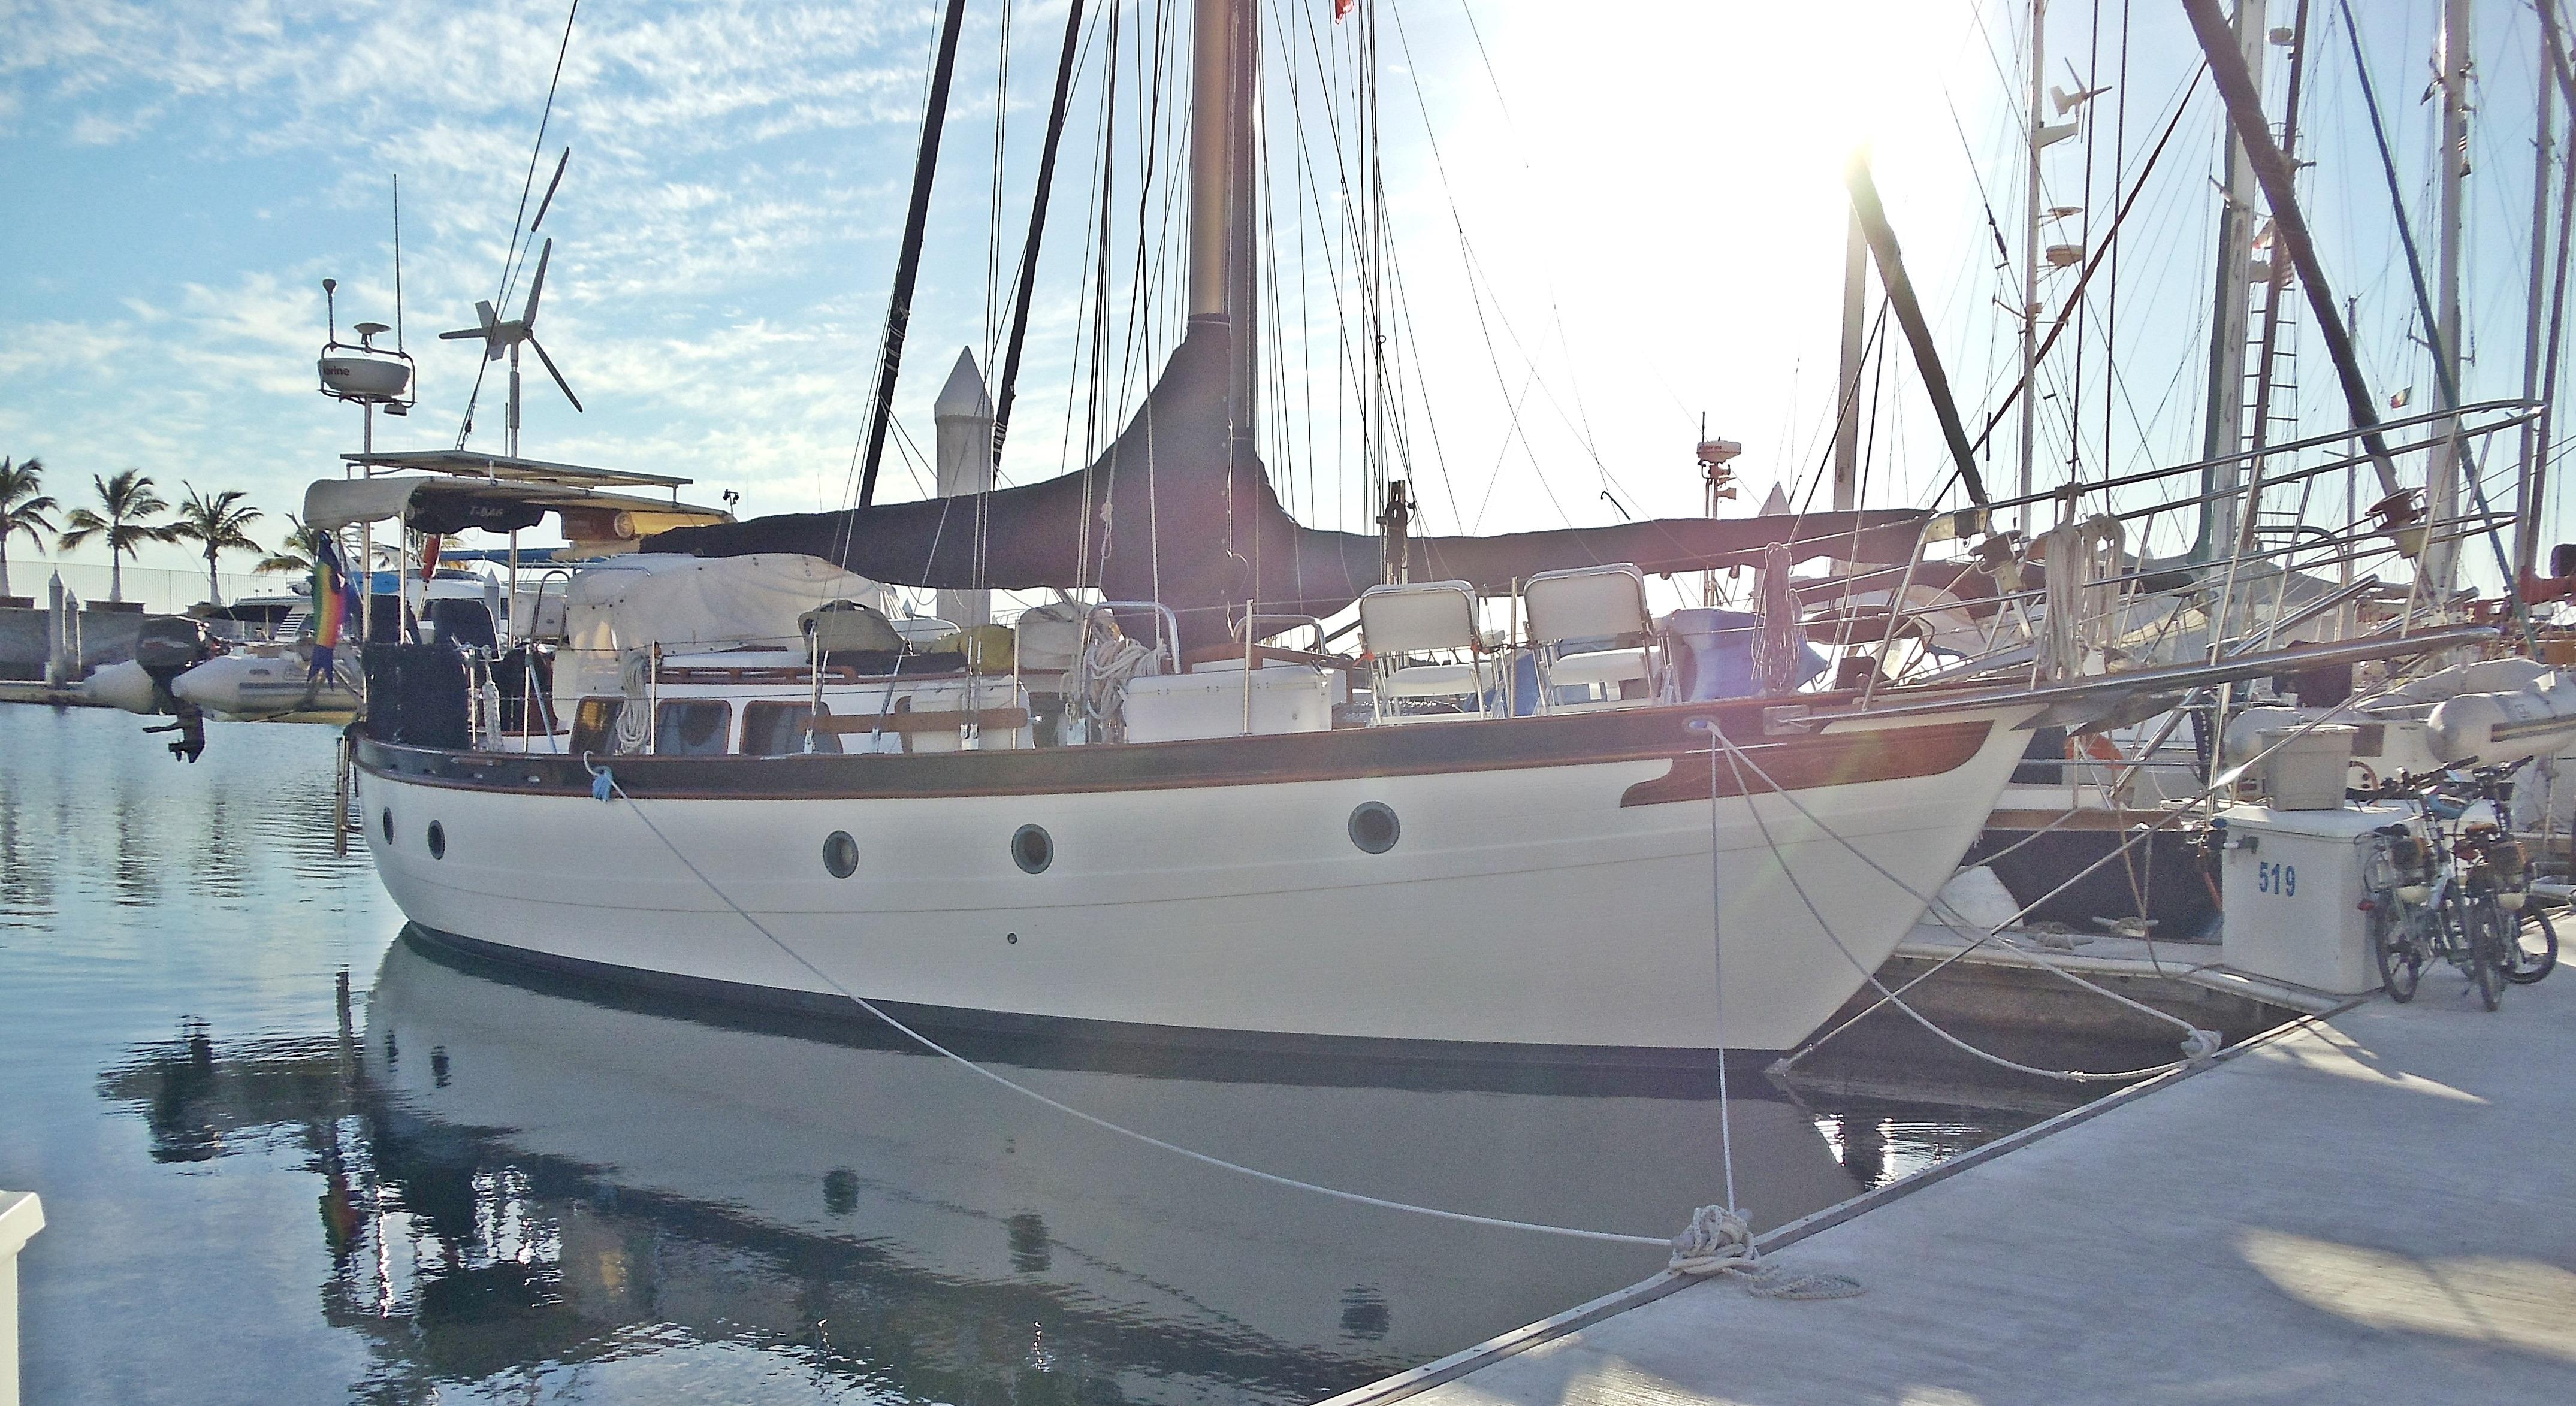 43' Spindrift Pilothouse Cutter+Boat for sale!